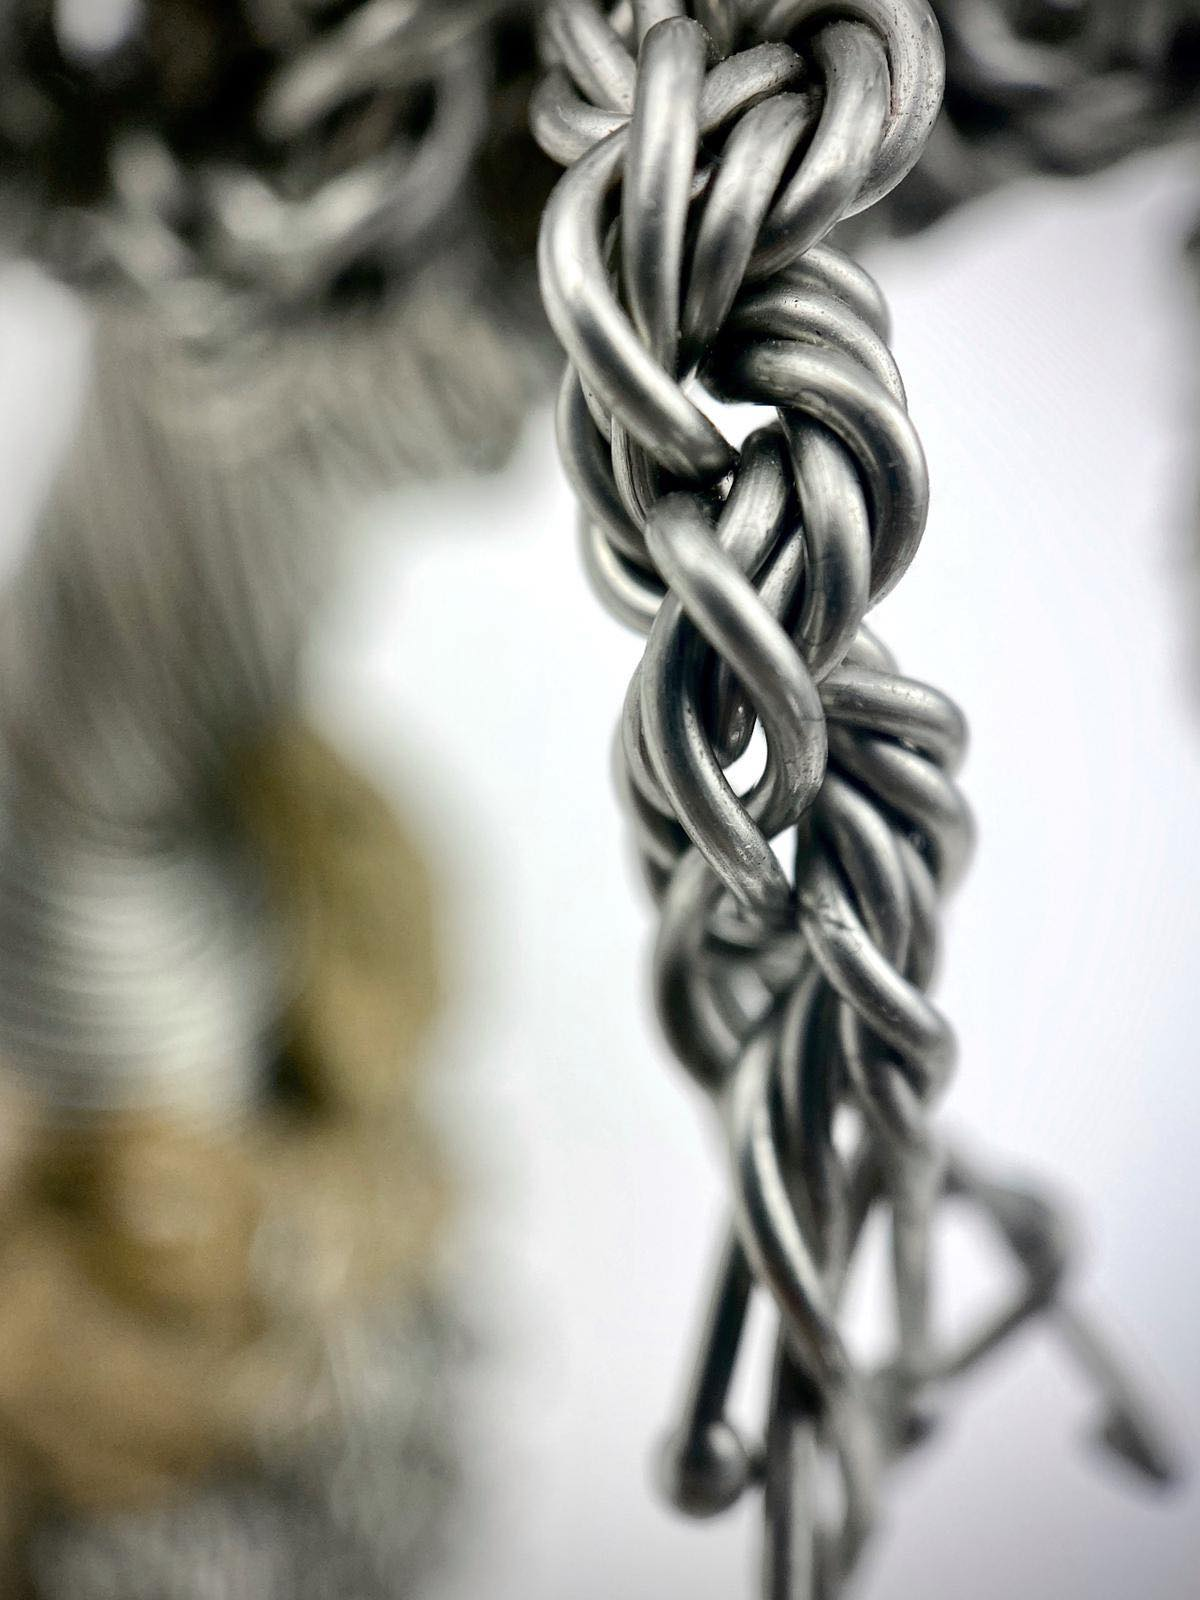 staying-strong-wire-tree-sculpture-twisting-wire-by-weaam-hassan